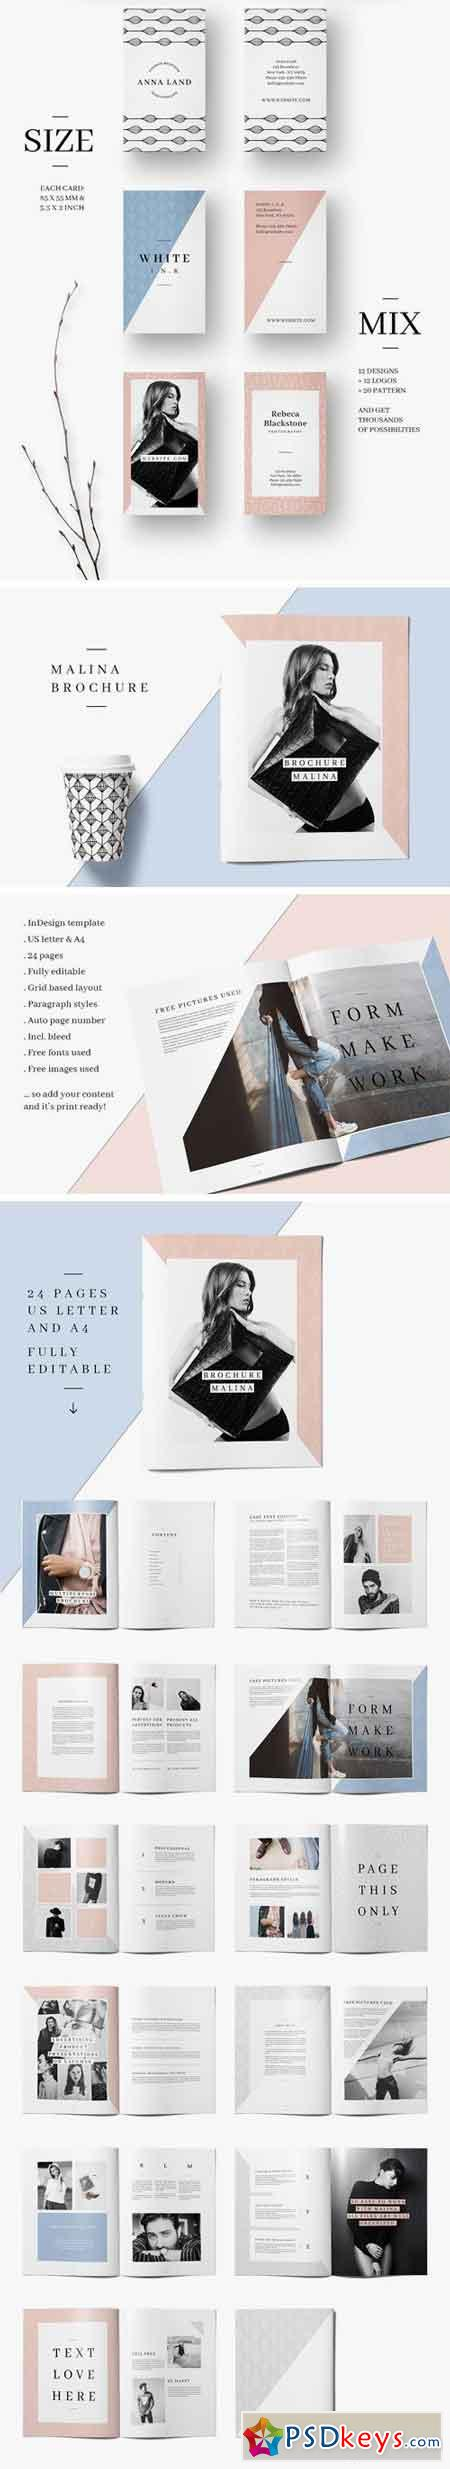 MALINA Branding Bundle – All in One 1507968